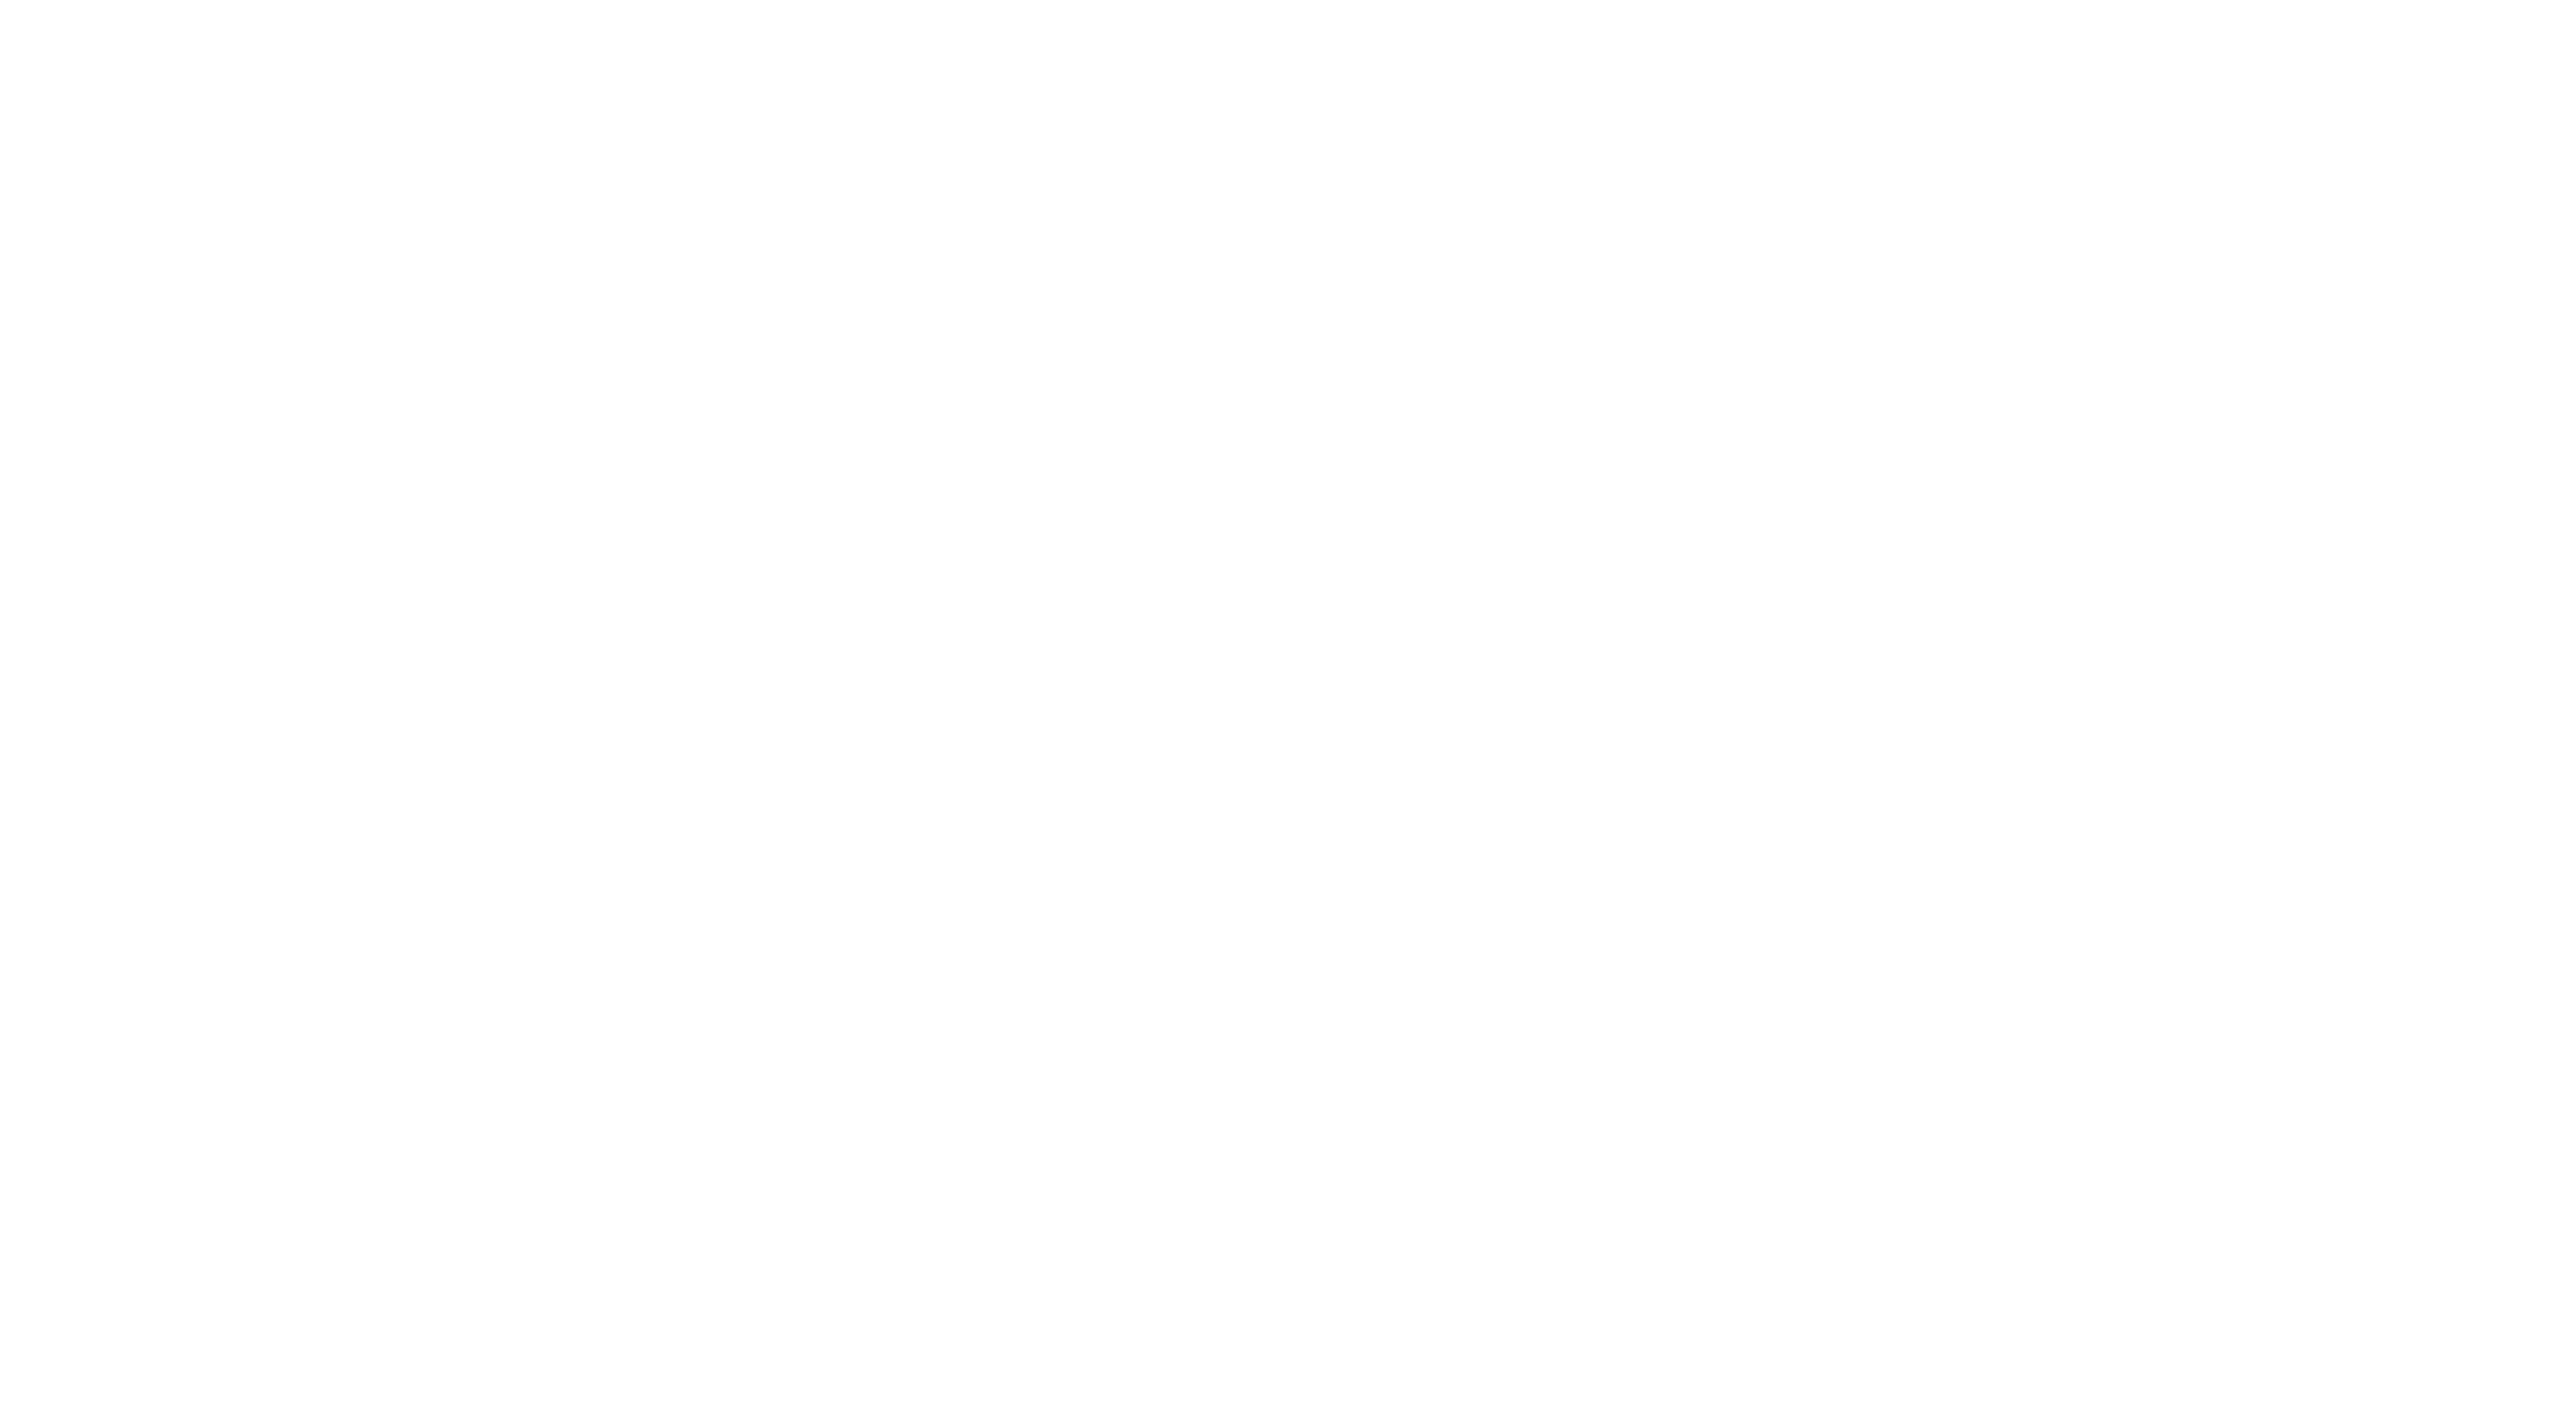 AlphaOmegaProductions